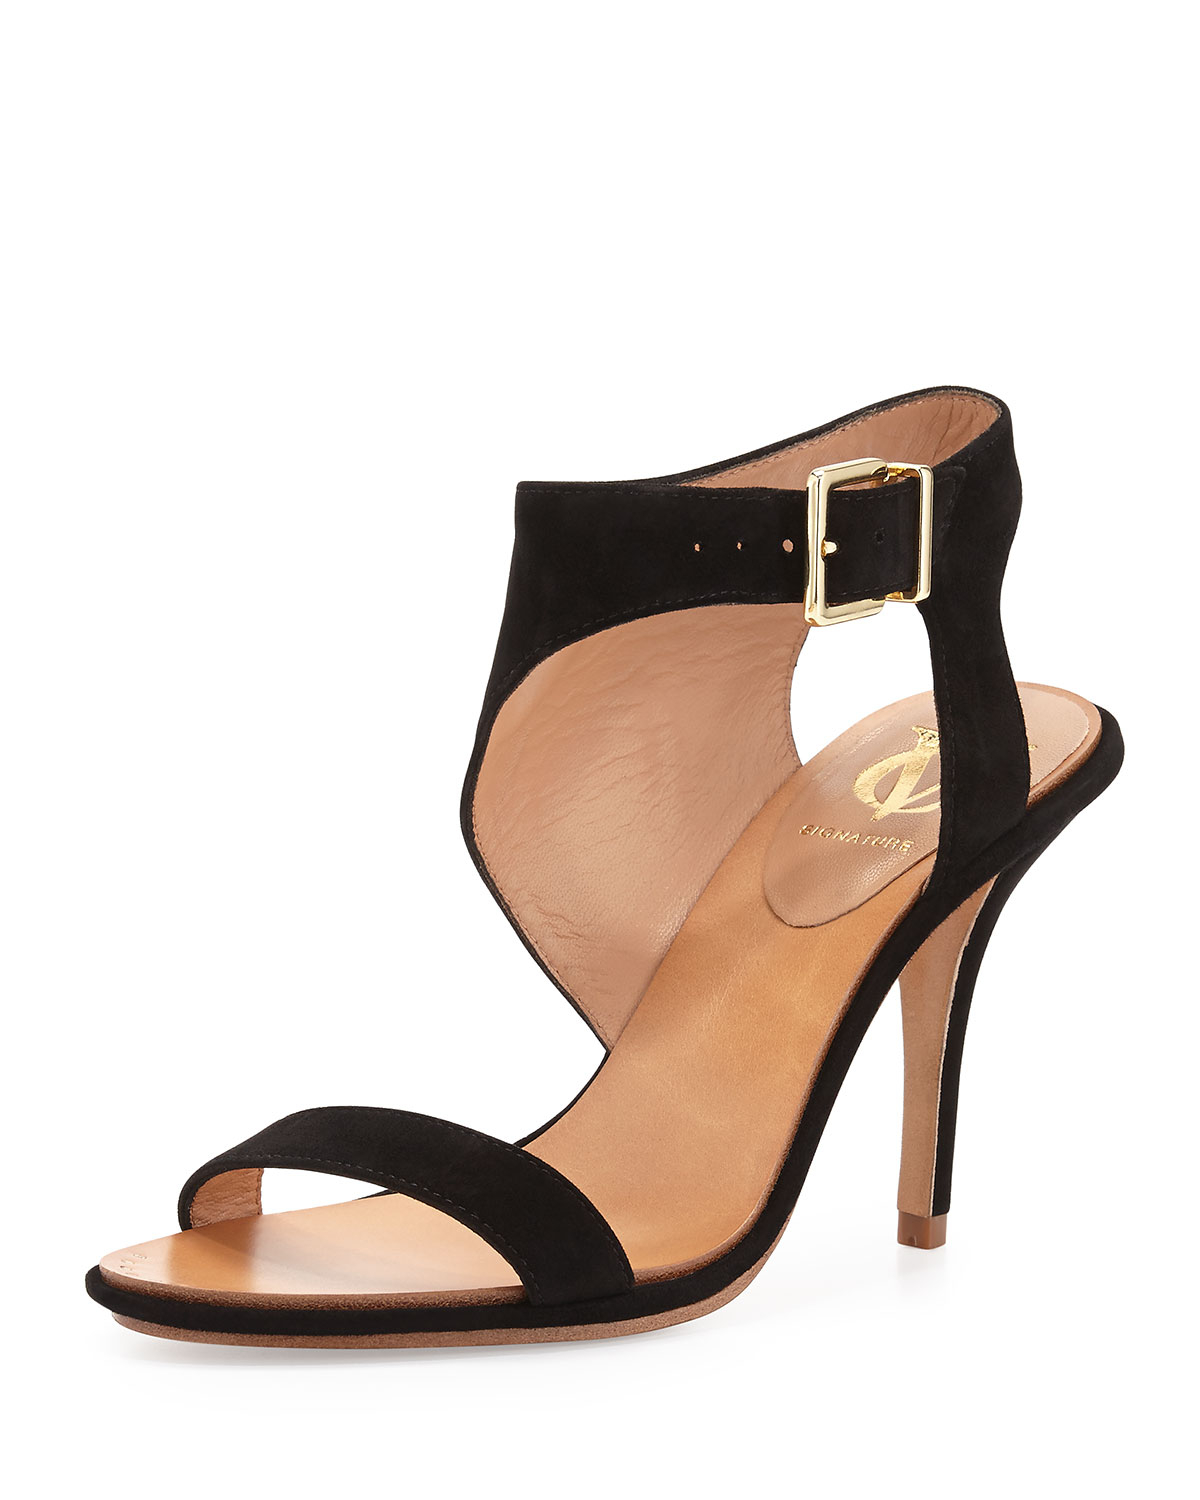 Vince Camuto Signature Suede Pikora Ankle Wrap Sandal In